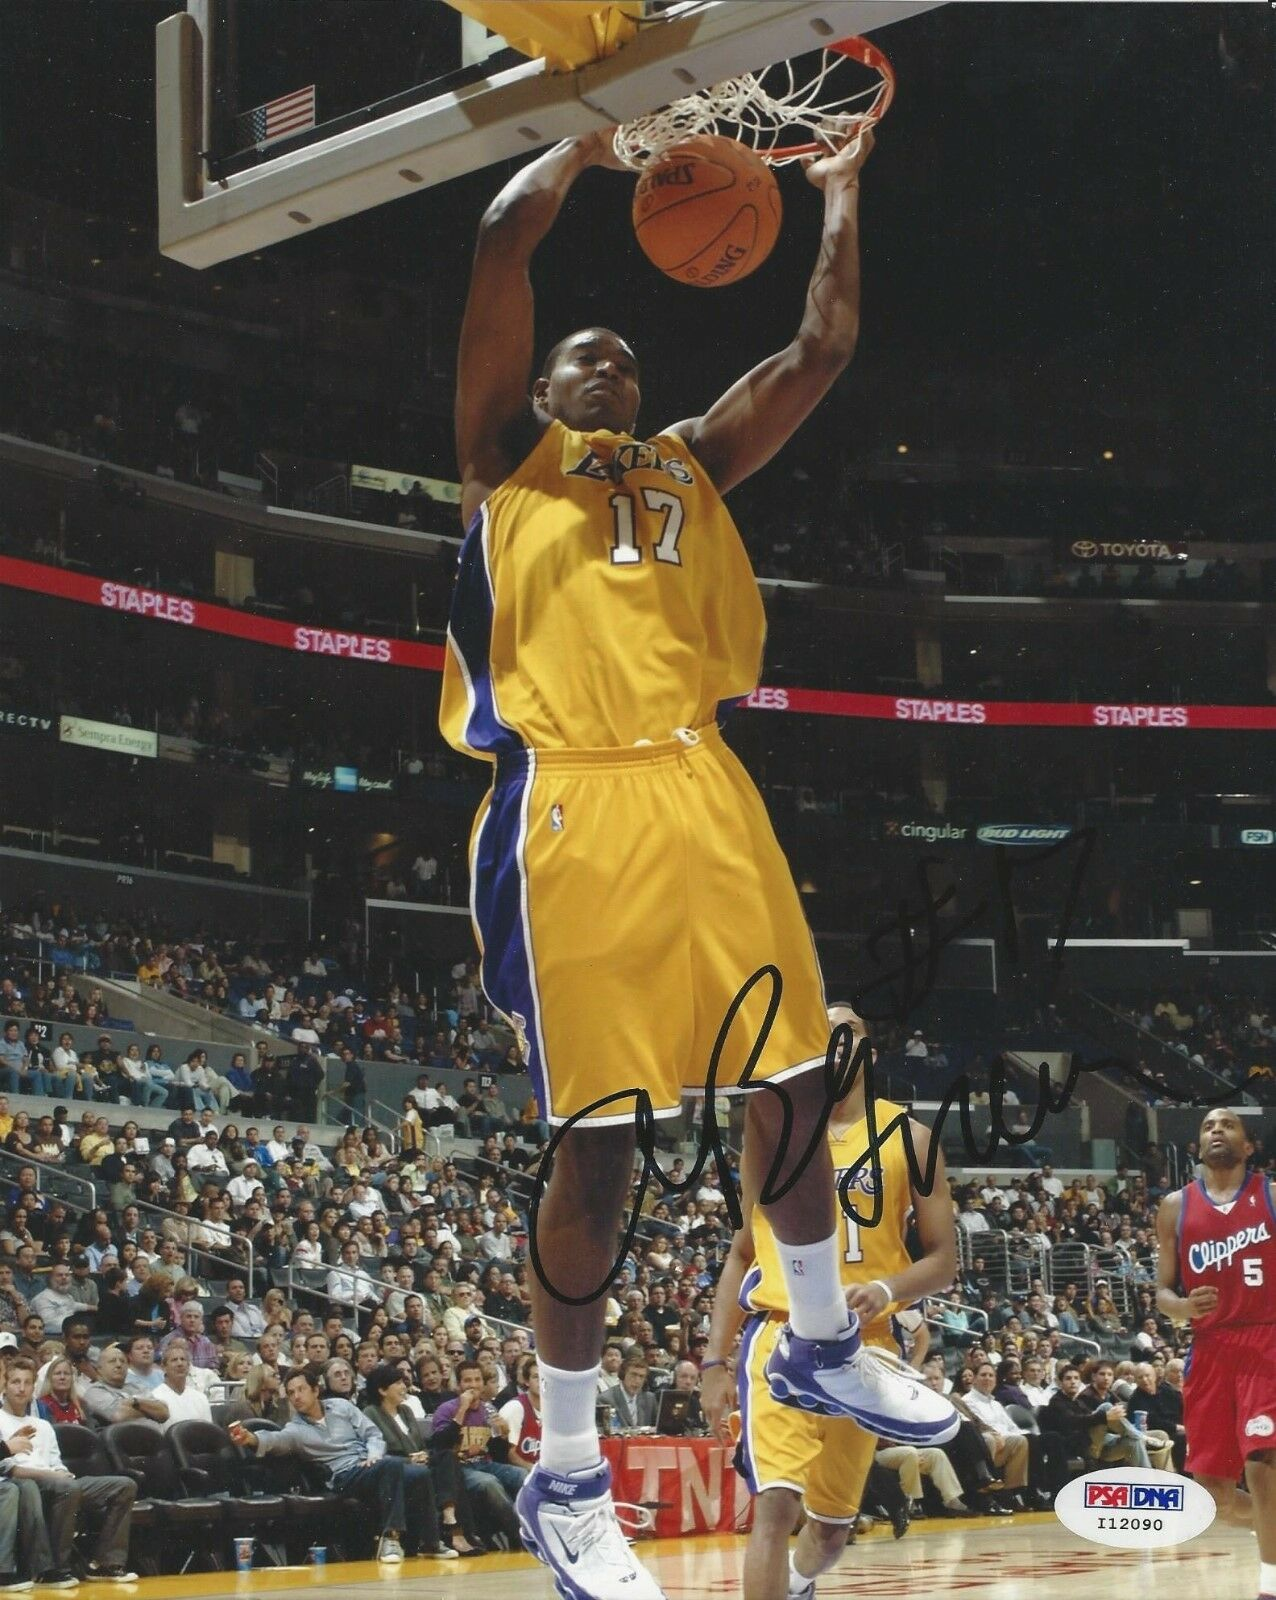 Andrew Bynum Los Angeles Lakers signed 8x10 photo PSA/DNA #I12090